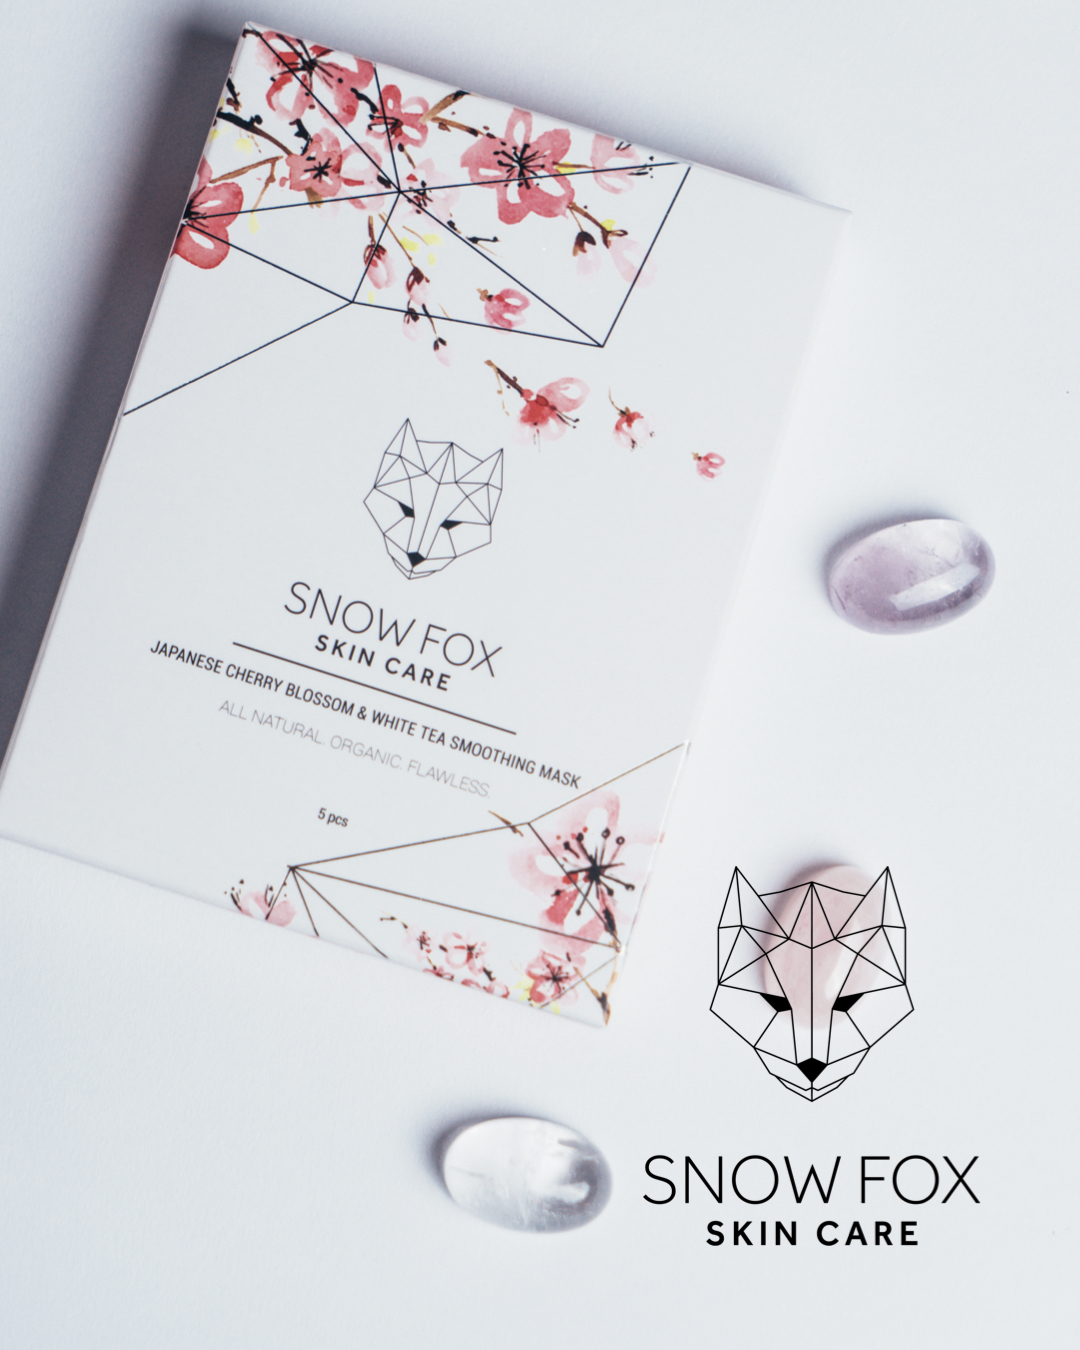 Snowfox Skin CDS East 2019.001.jpeg